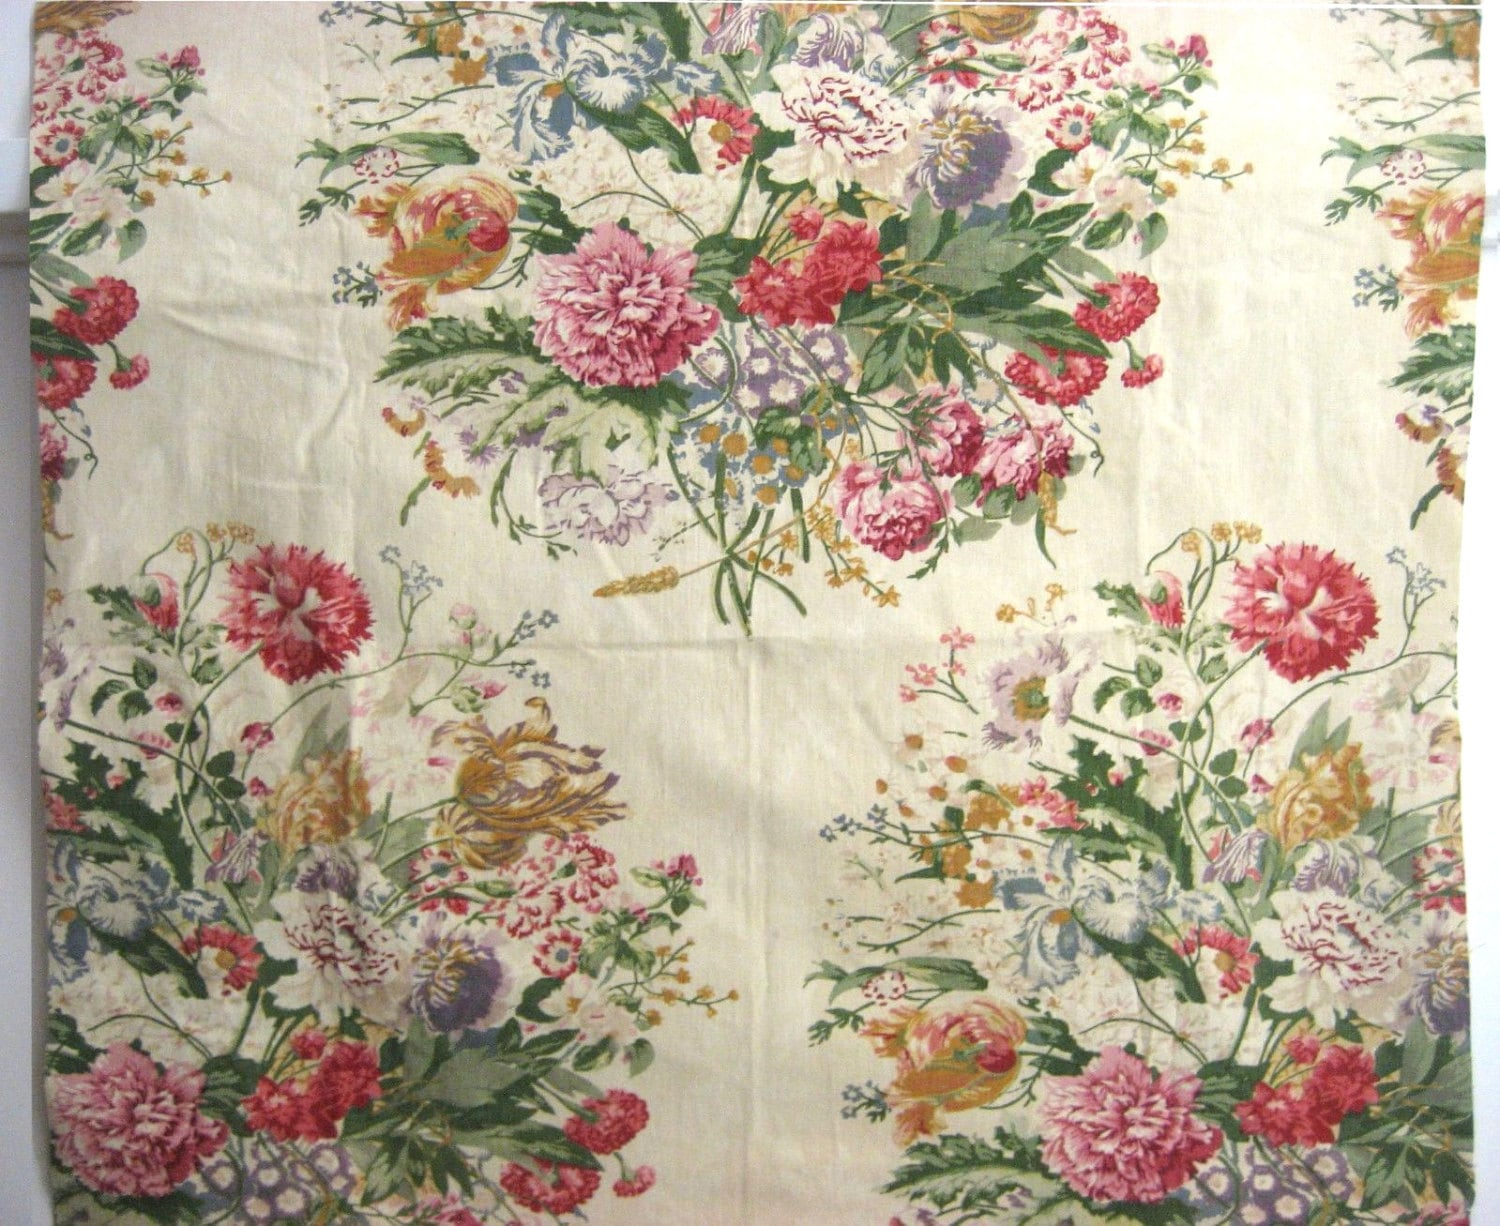 Beautiful Vintage 1930s French Floral Cotton Print Fabric